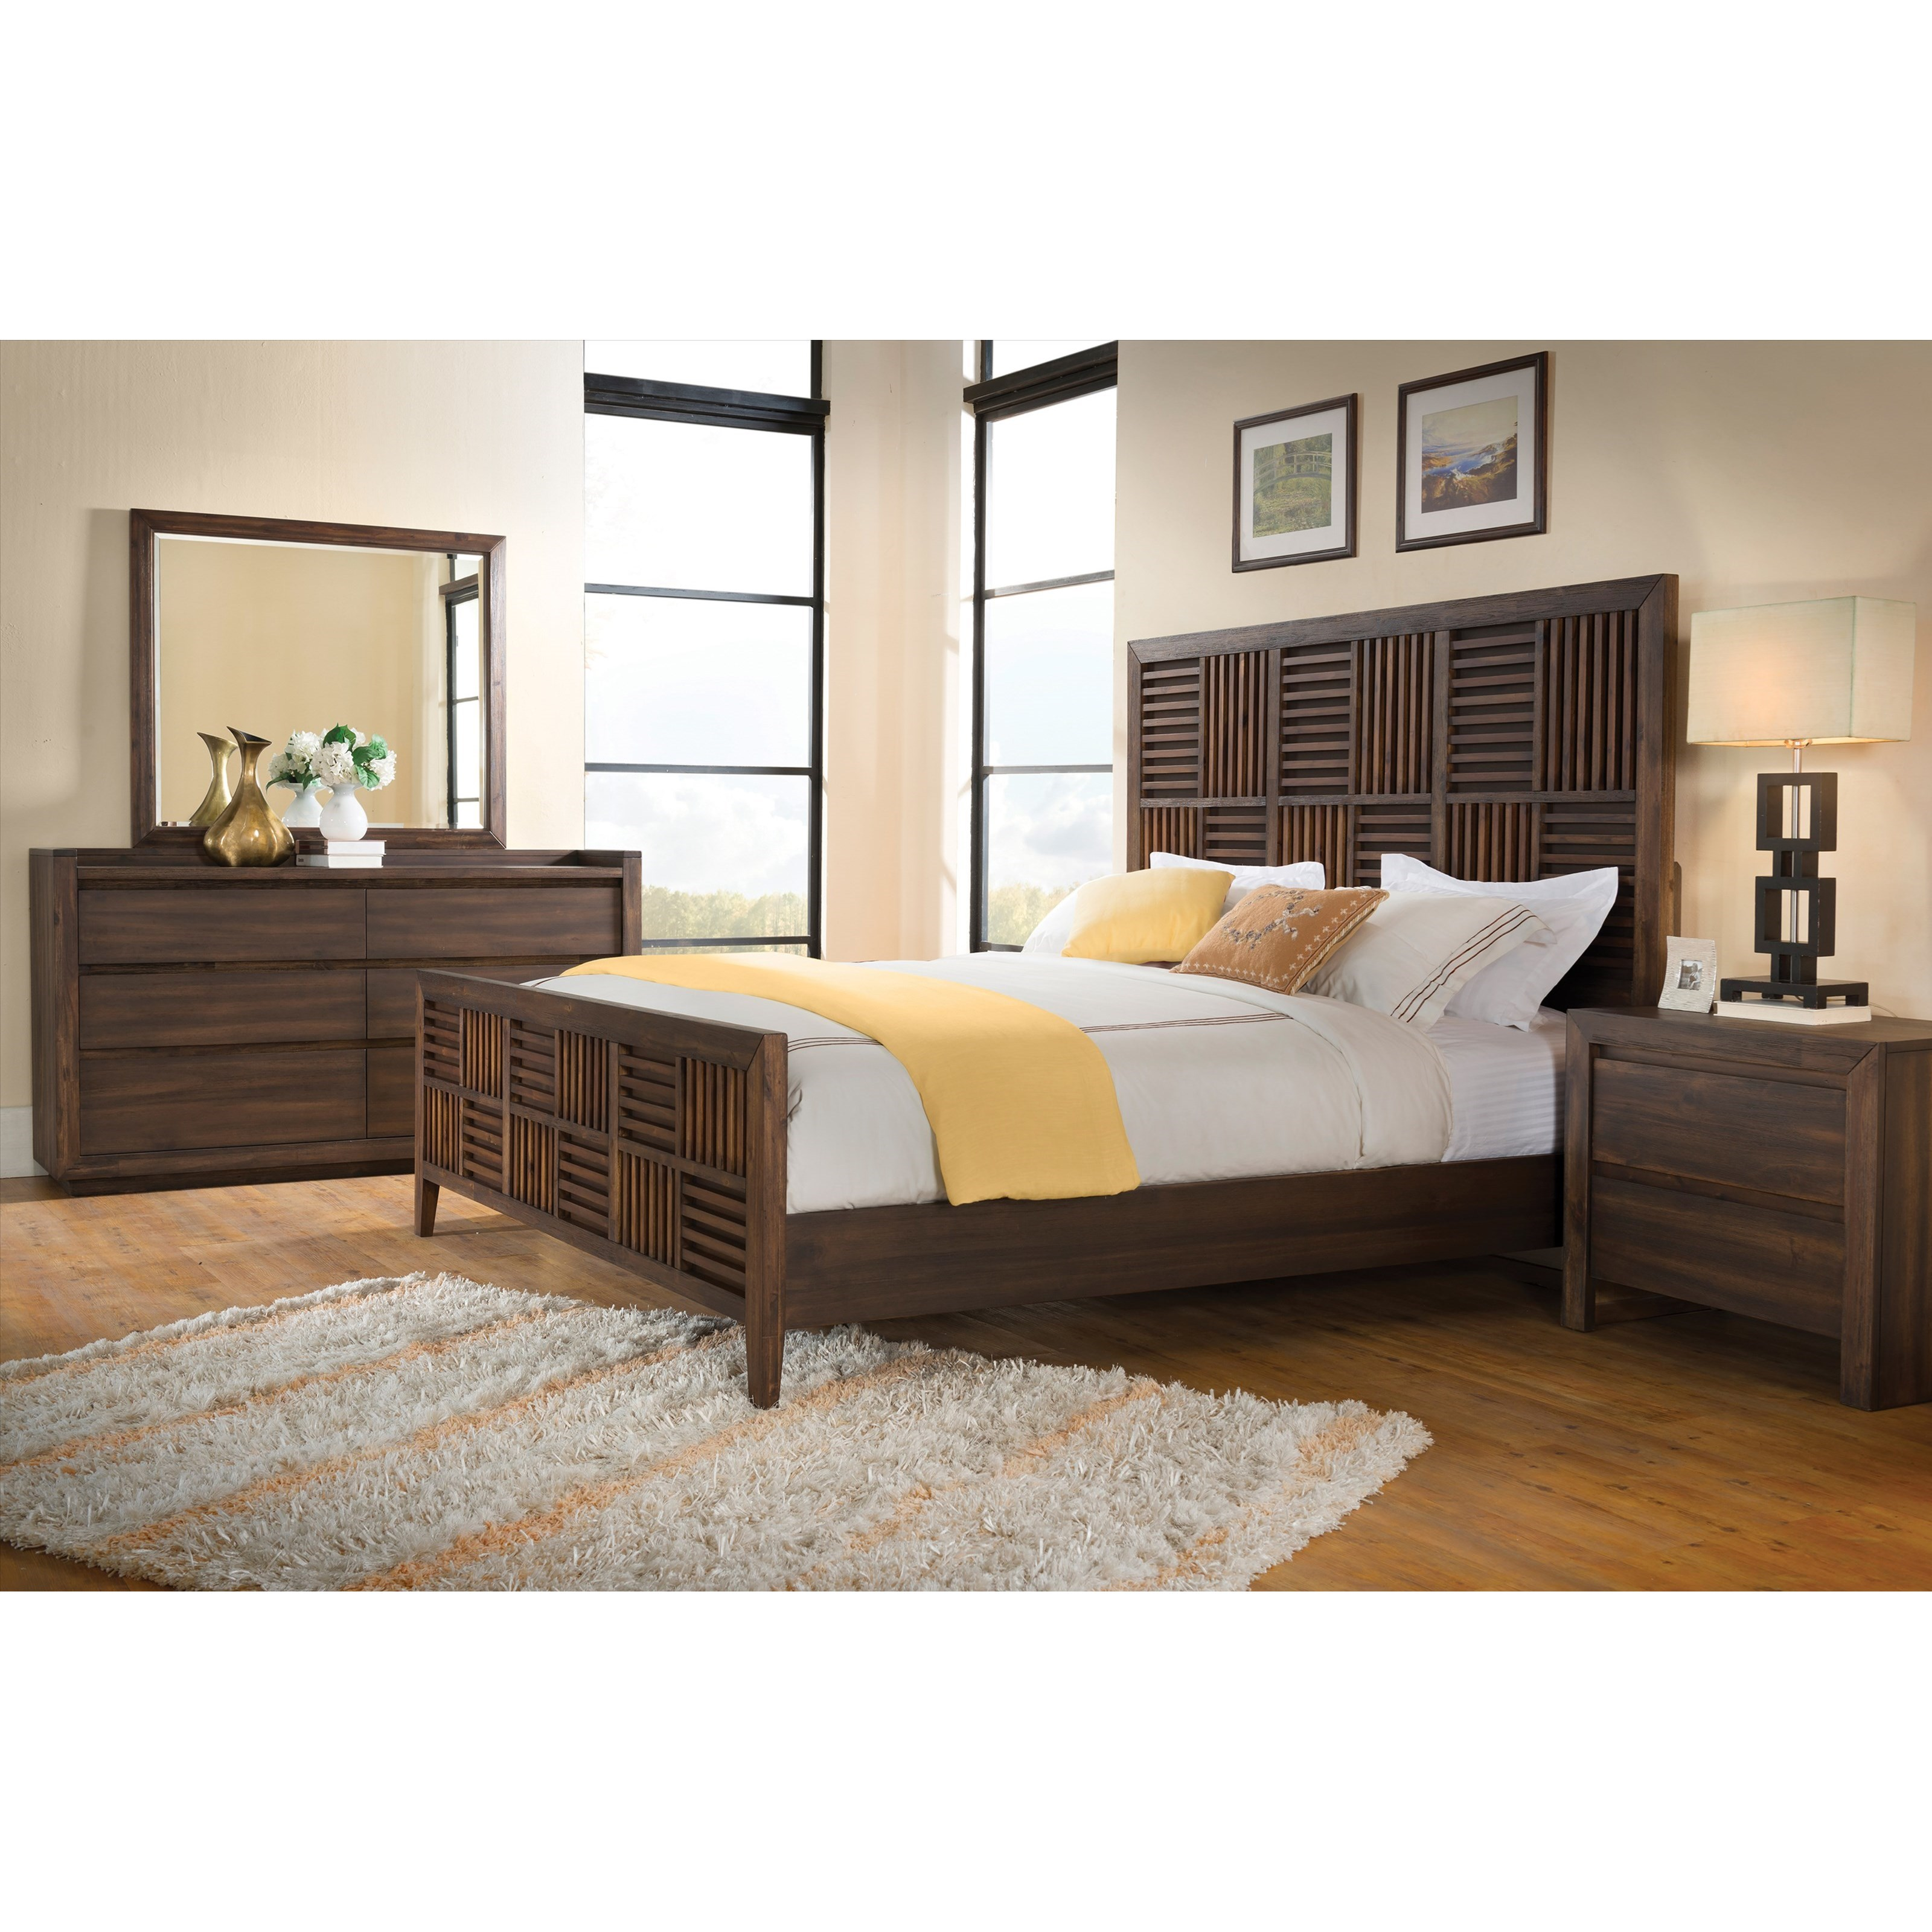 s furniture by mirabelle riverside bedrooms panel humble in bed pin bedroom wood acru